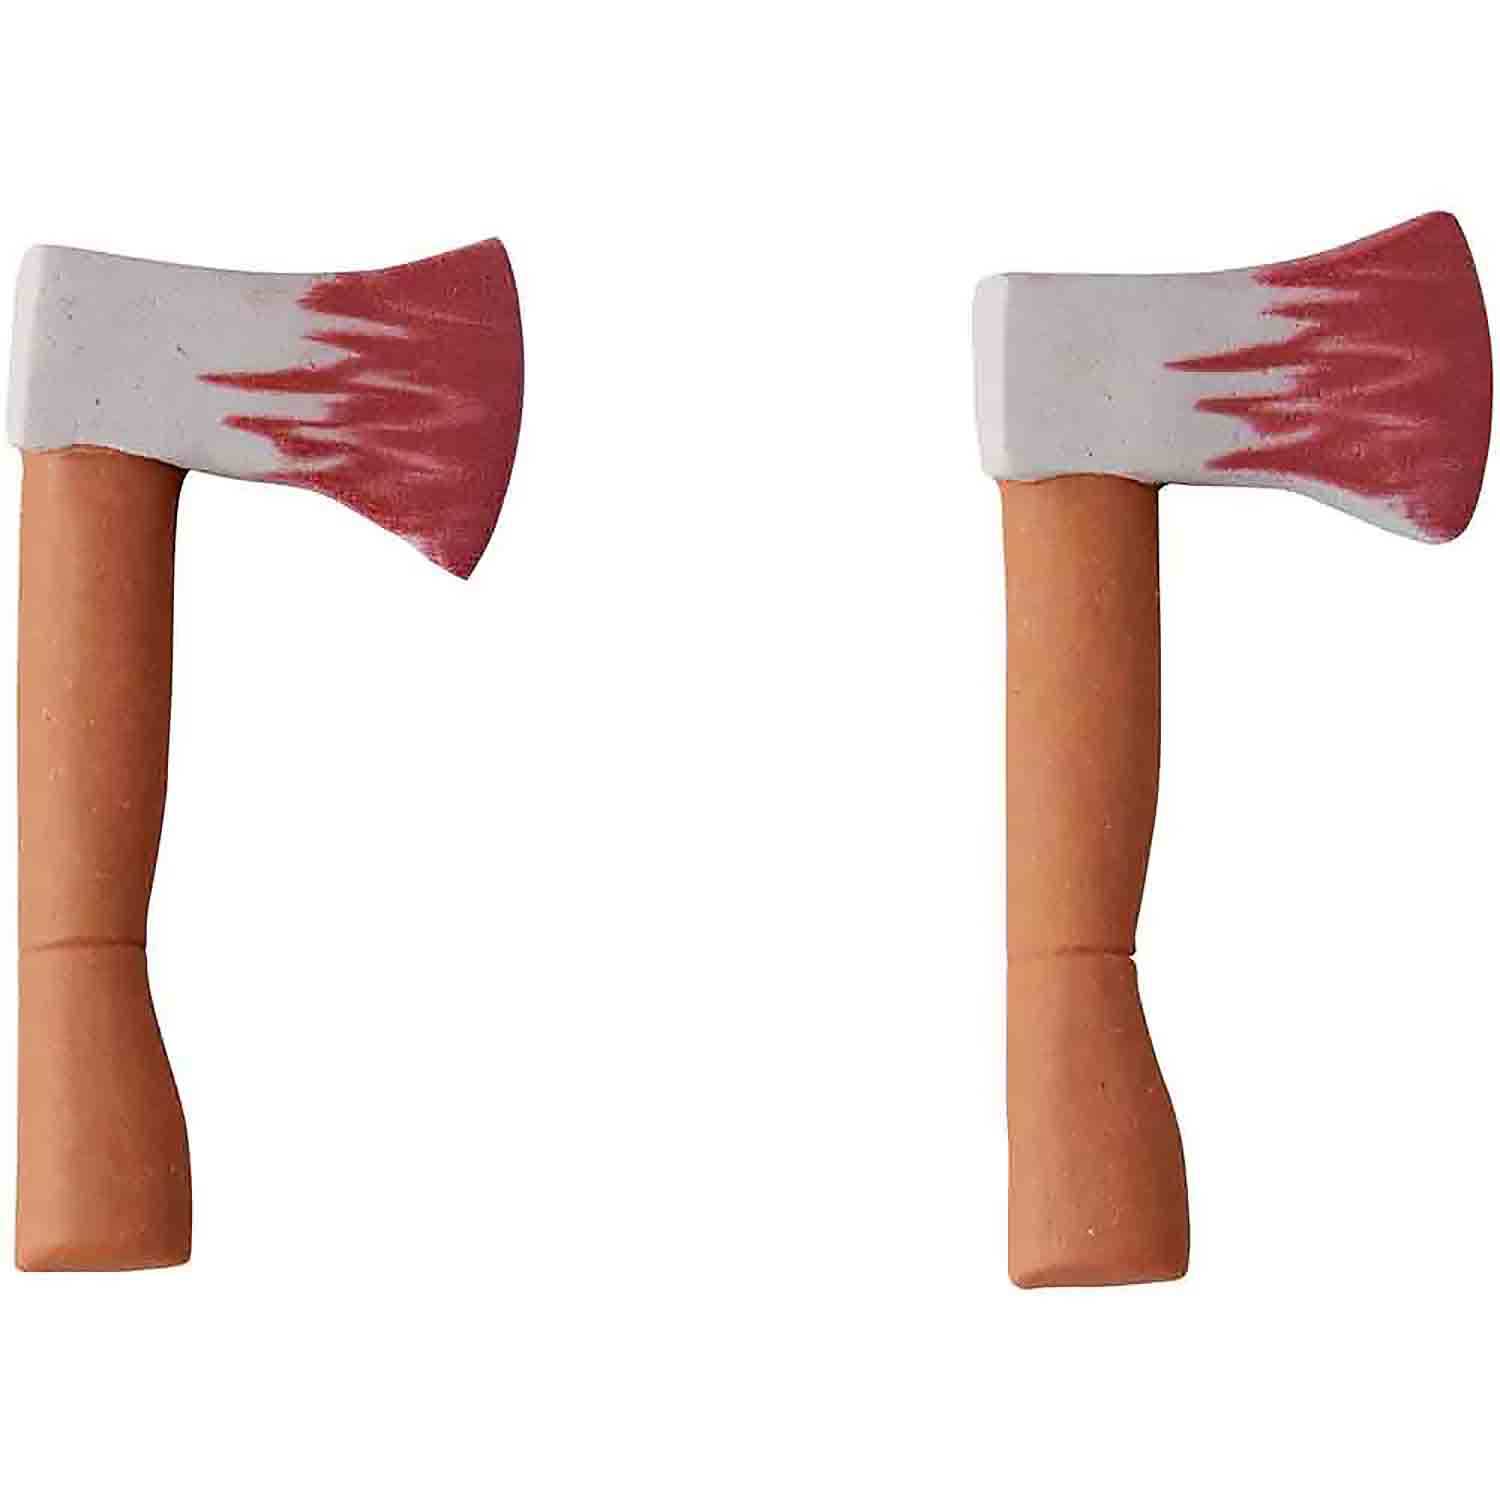 Bloody Axe Icing Decorations